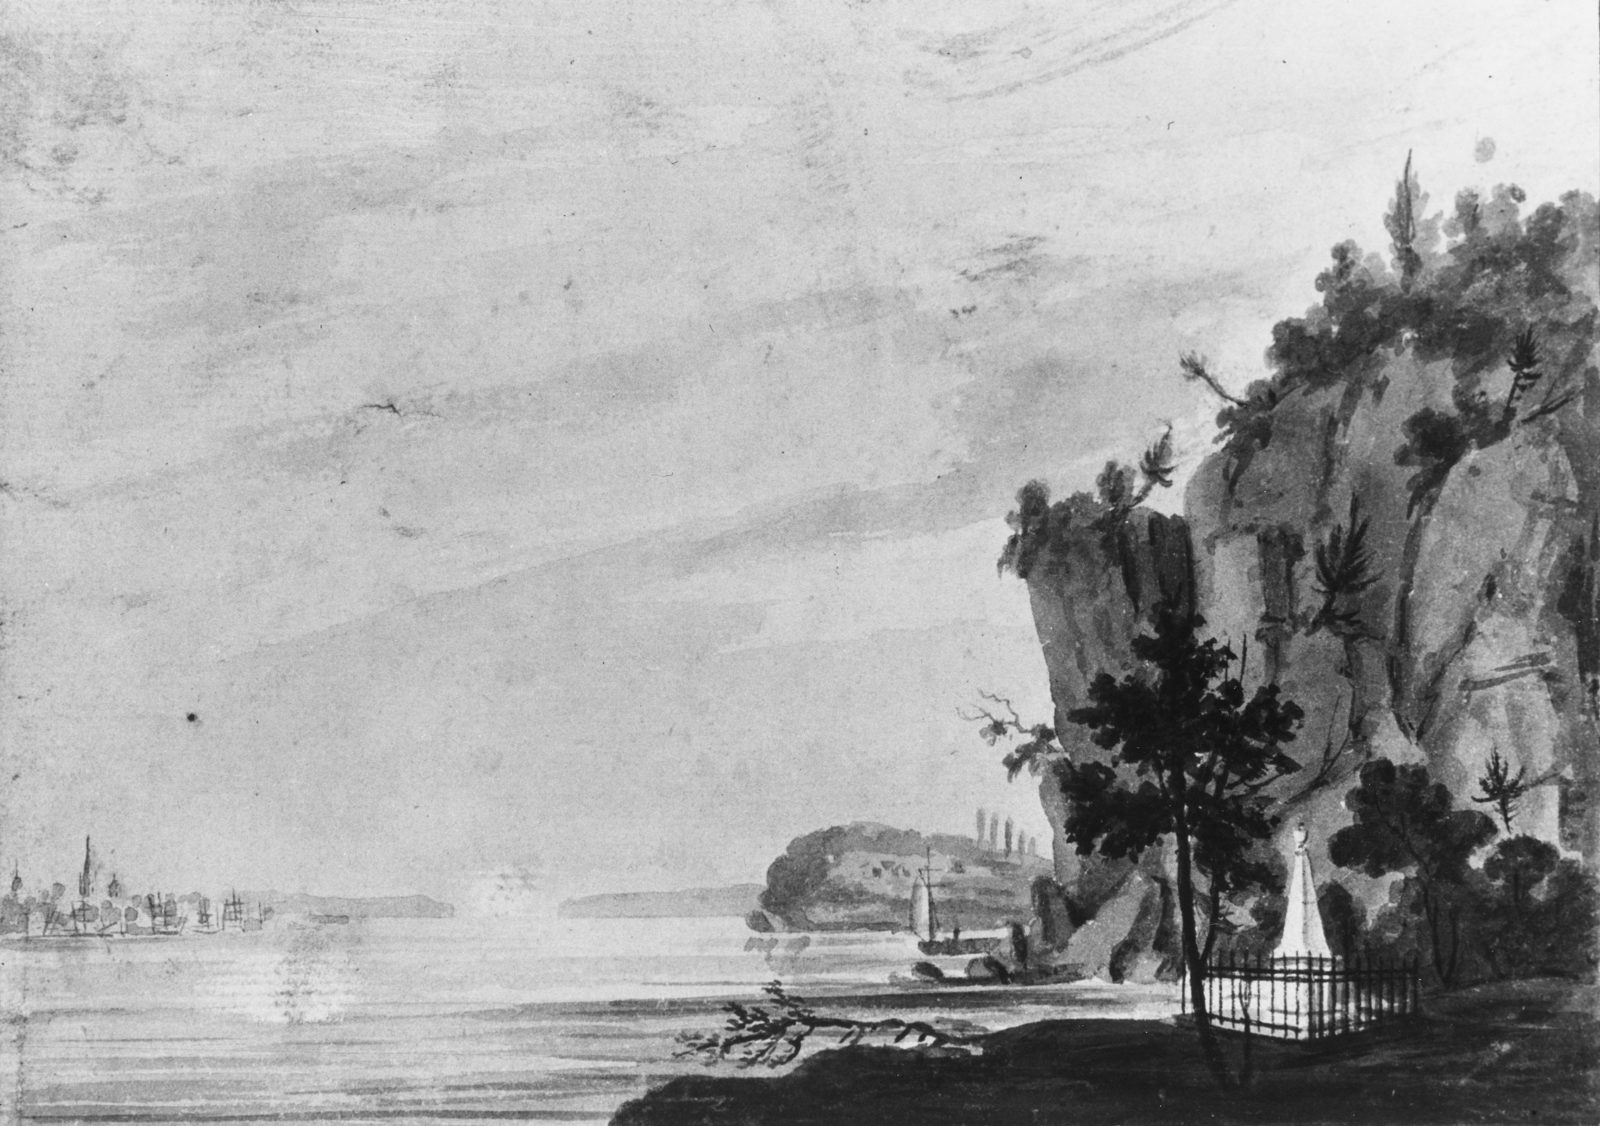 The Monument to Alexander Hamilton at Weehawken